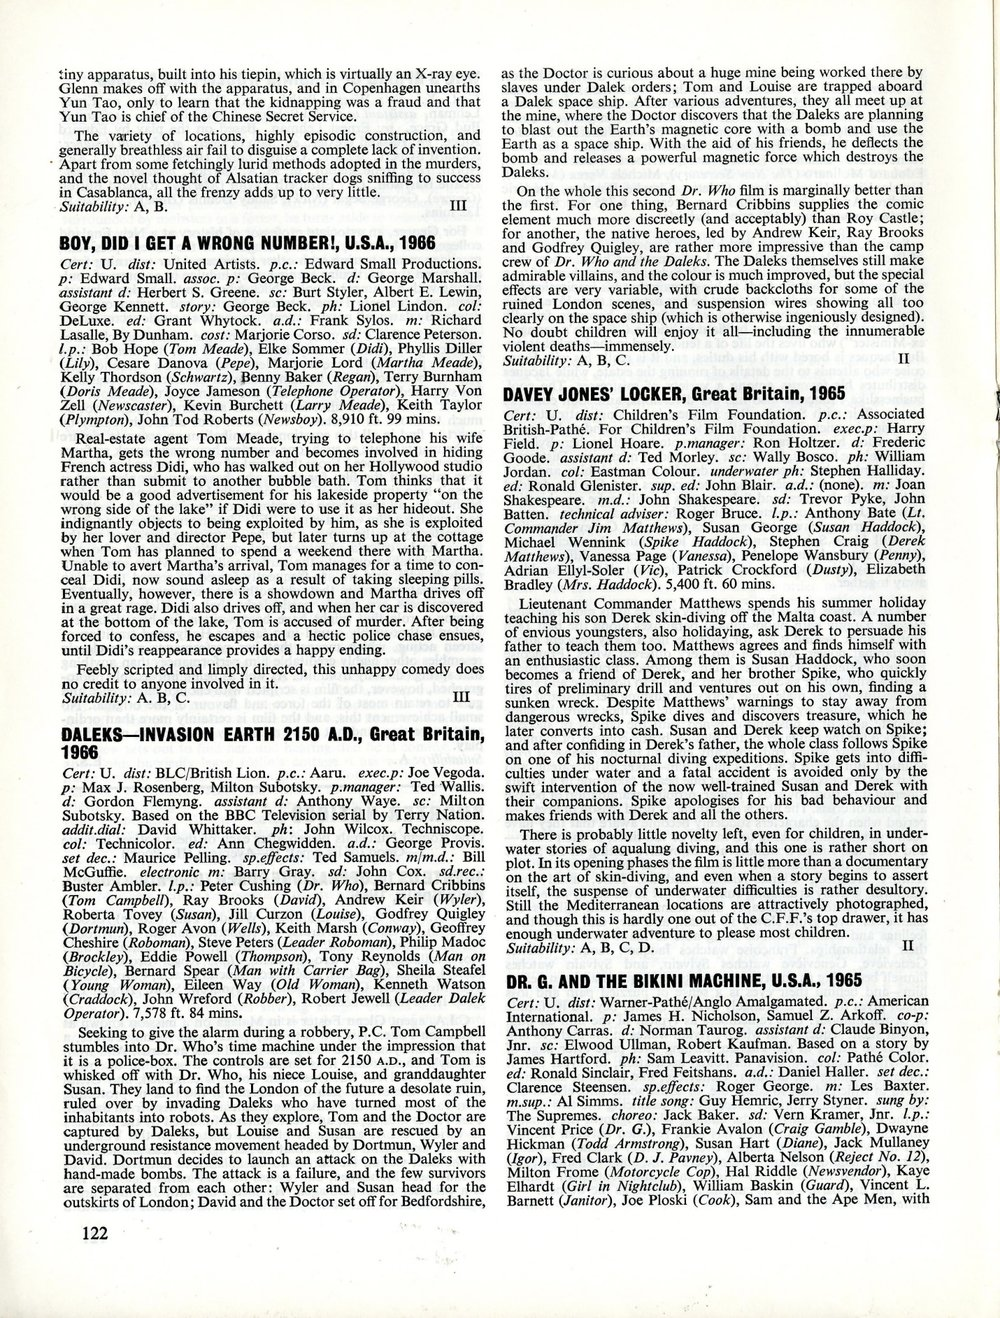 BFI Monthly Film Bulletin, August 1966